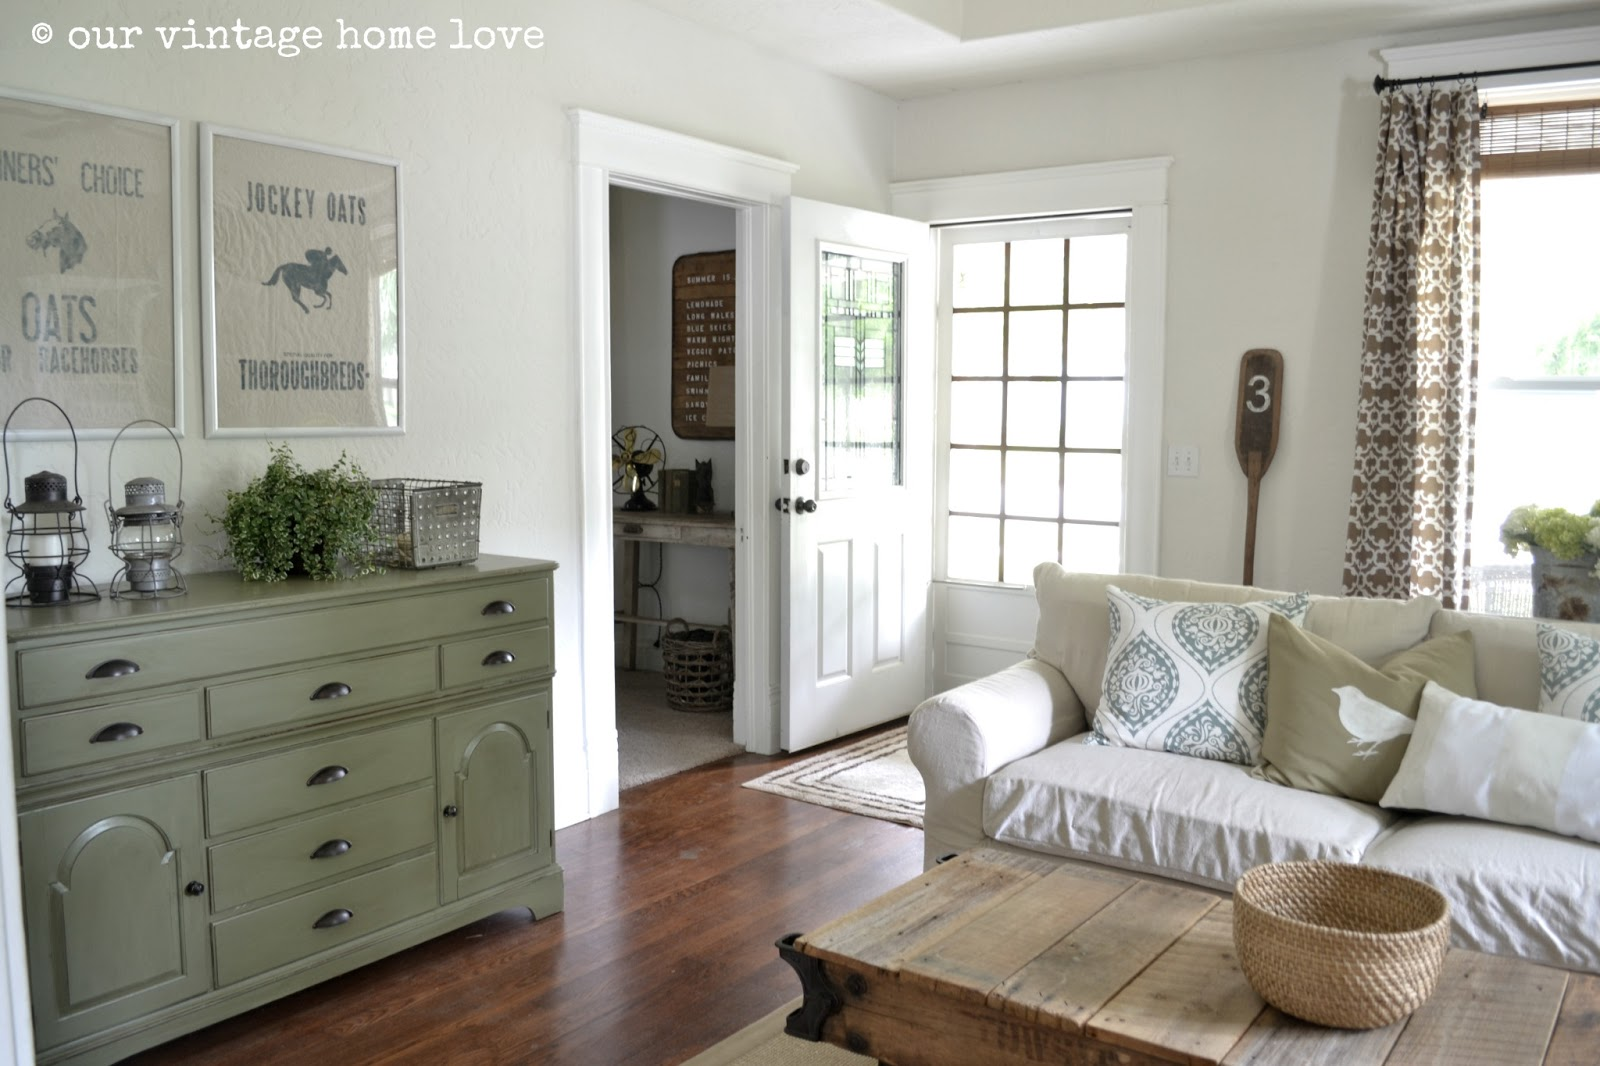 vintage home love our home family room dining room combo design ideas family room dining room combinations